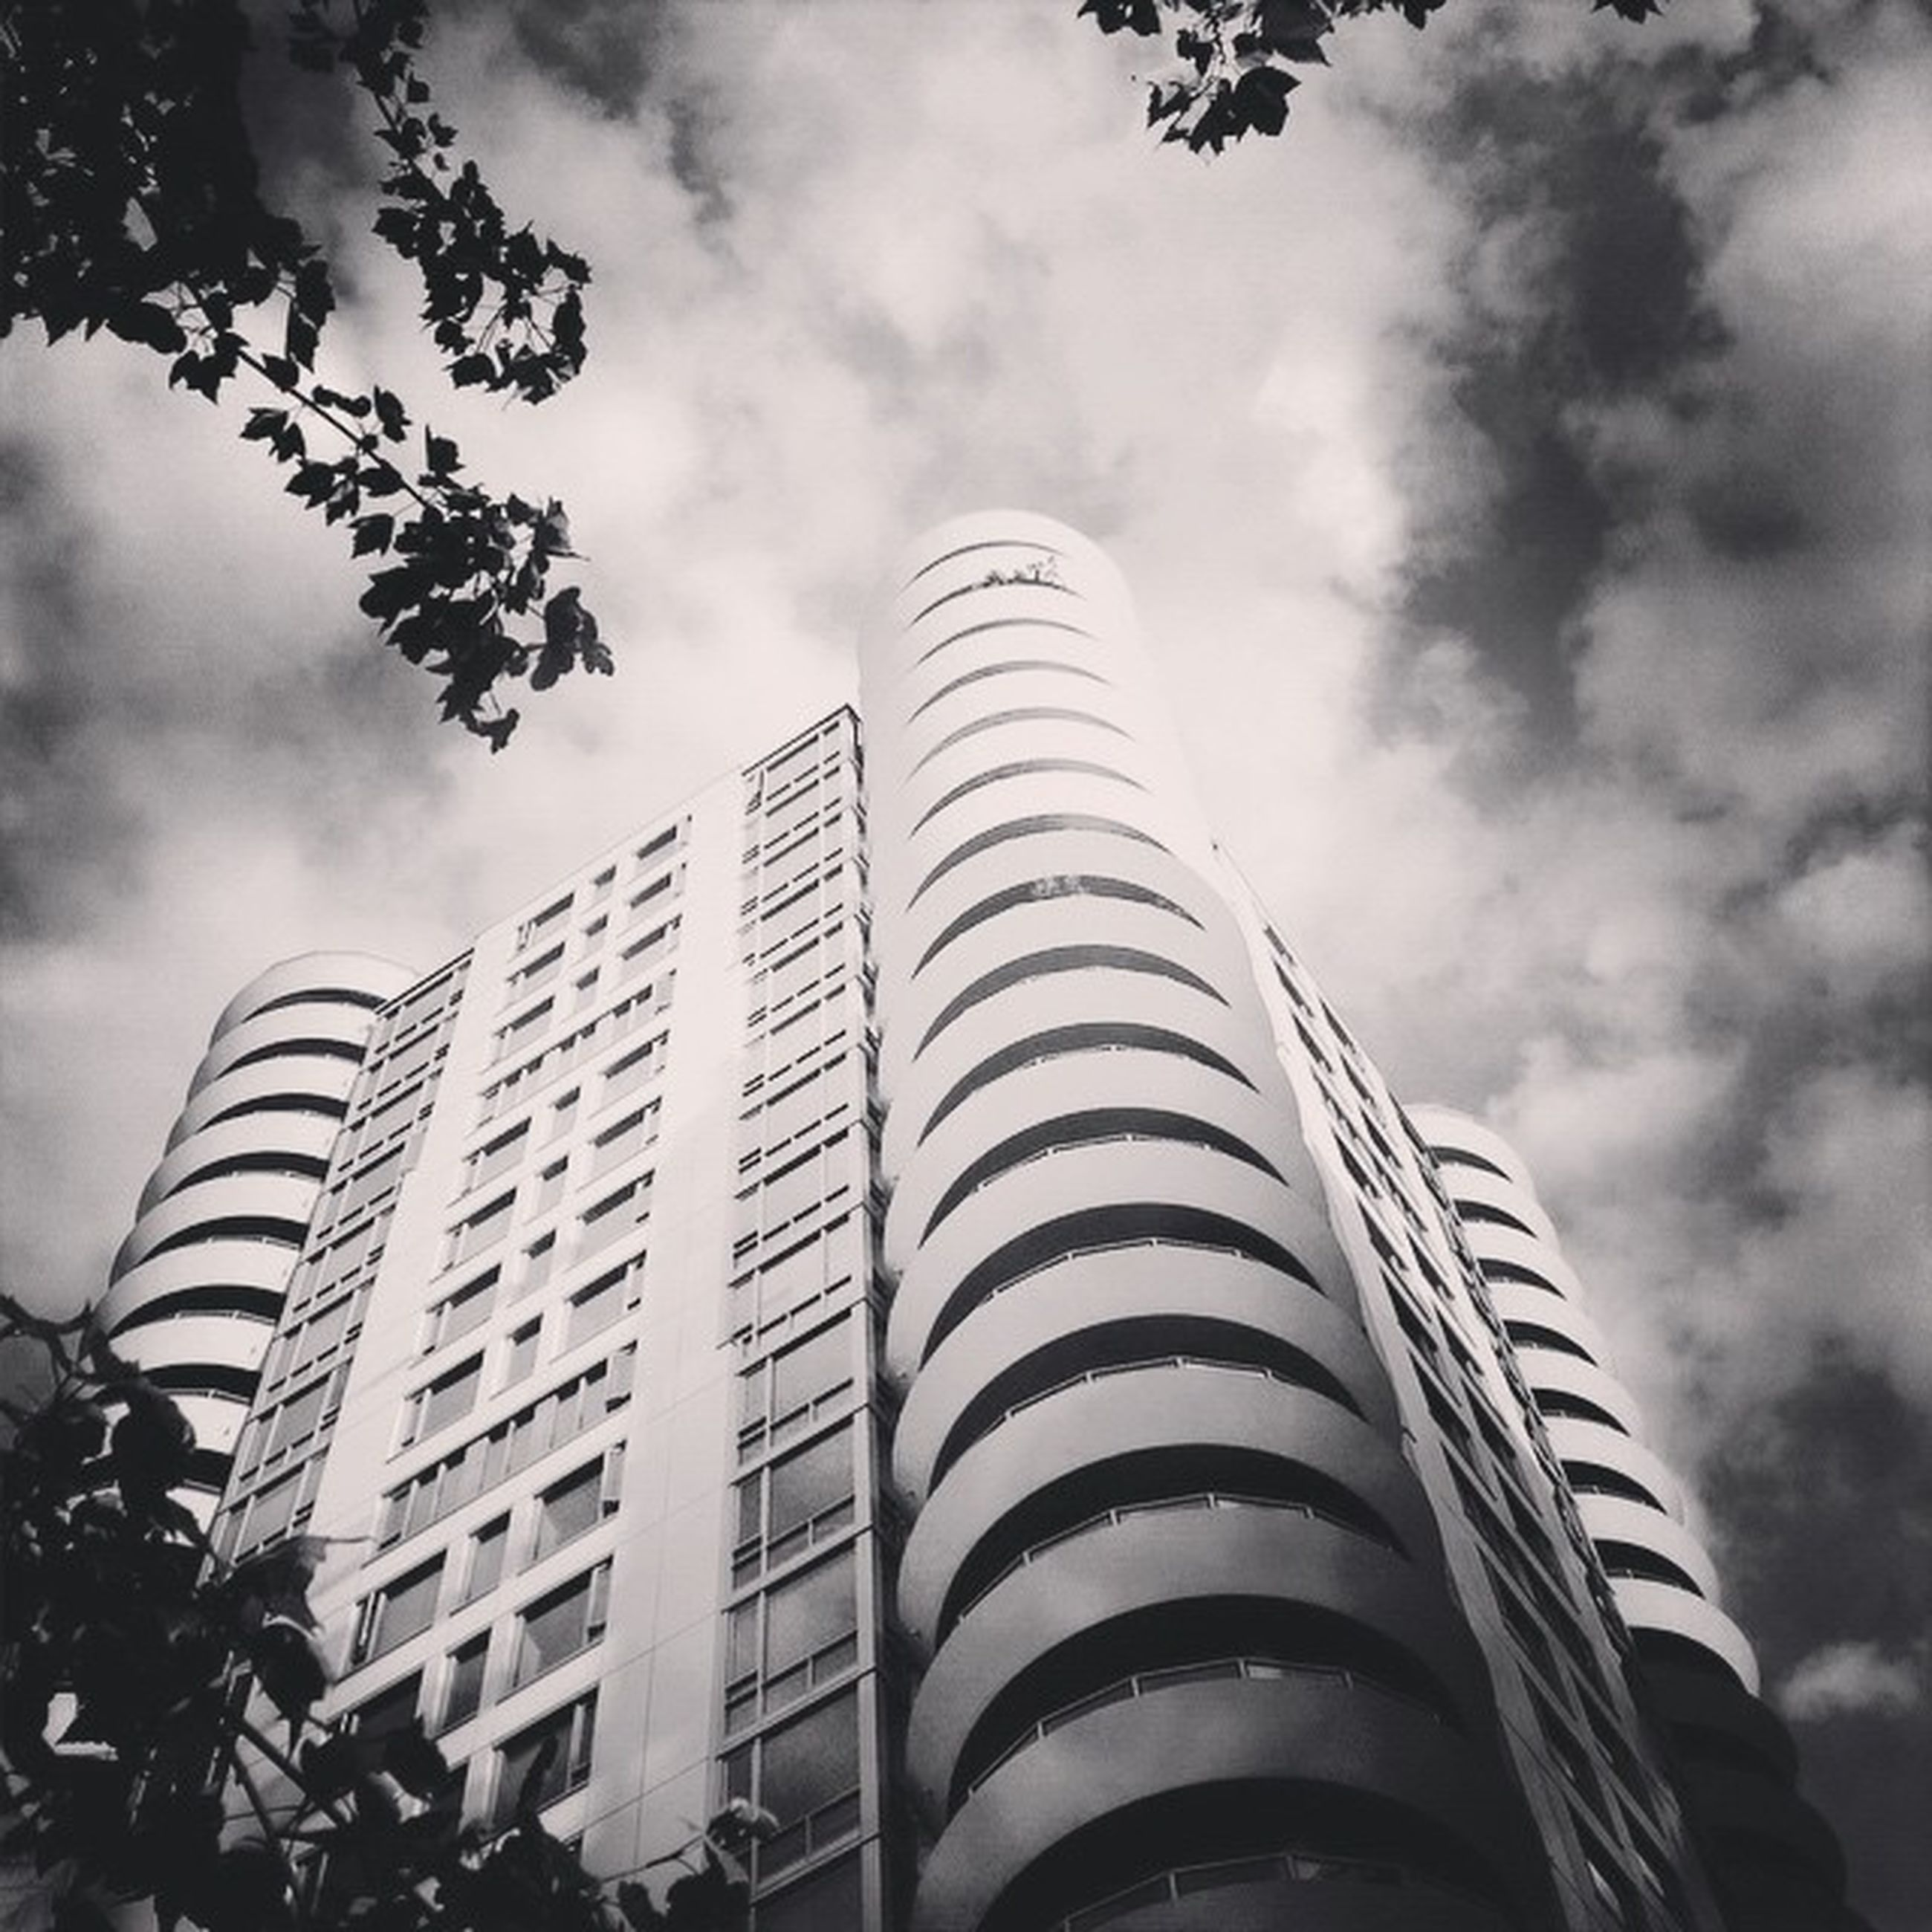 building exterior, architecture, built structure, low angle view, sky, cloud - sky, modern, city, tall - high, skyscraper, cloudy, office building, tower, building, cloud, tree, tall, outdoors, day, growth